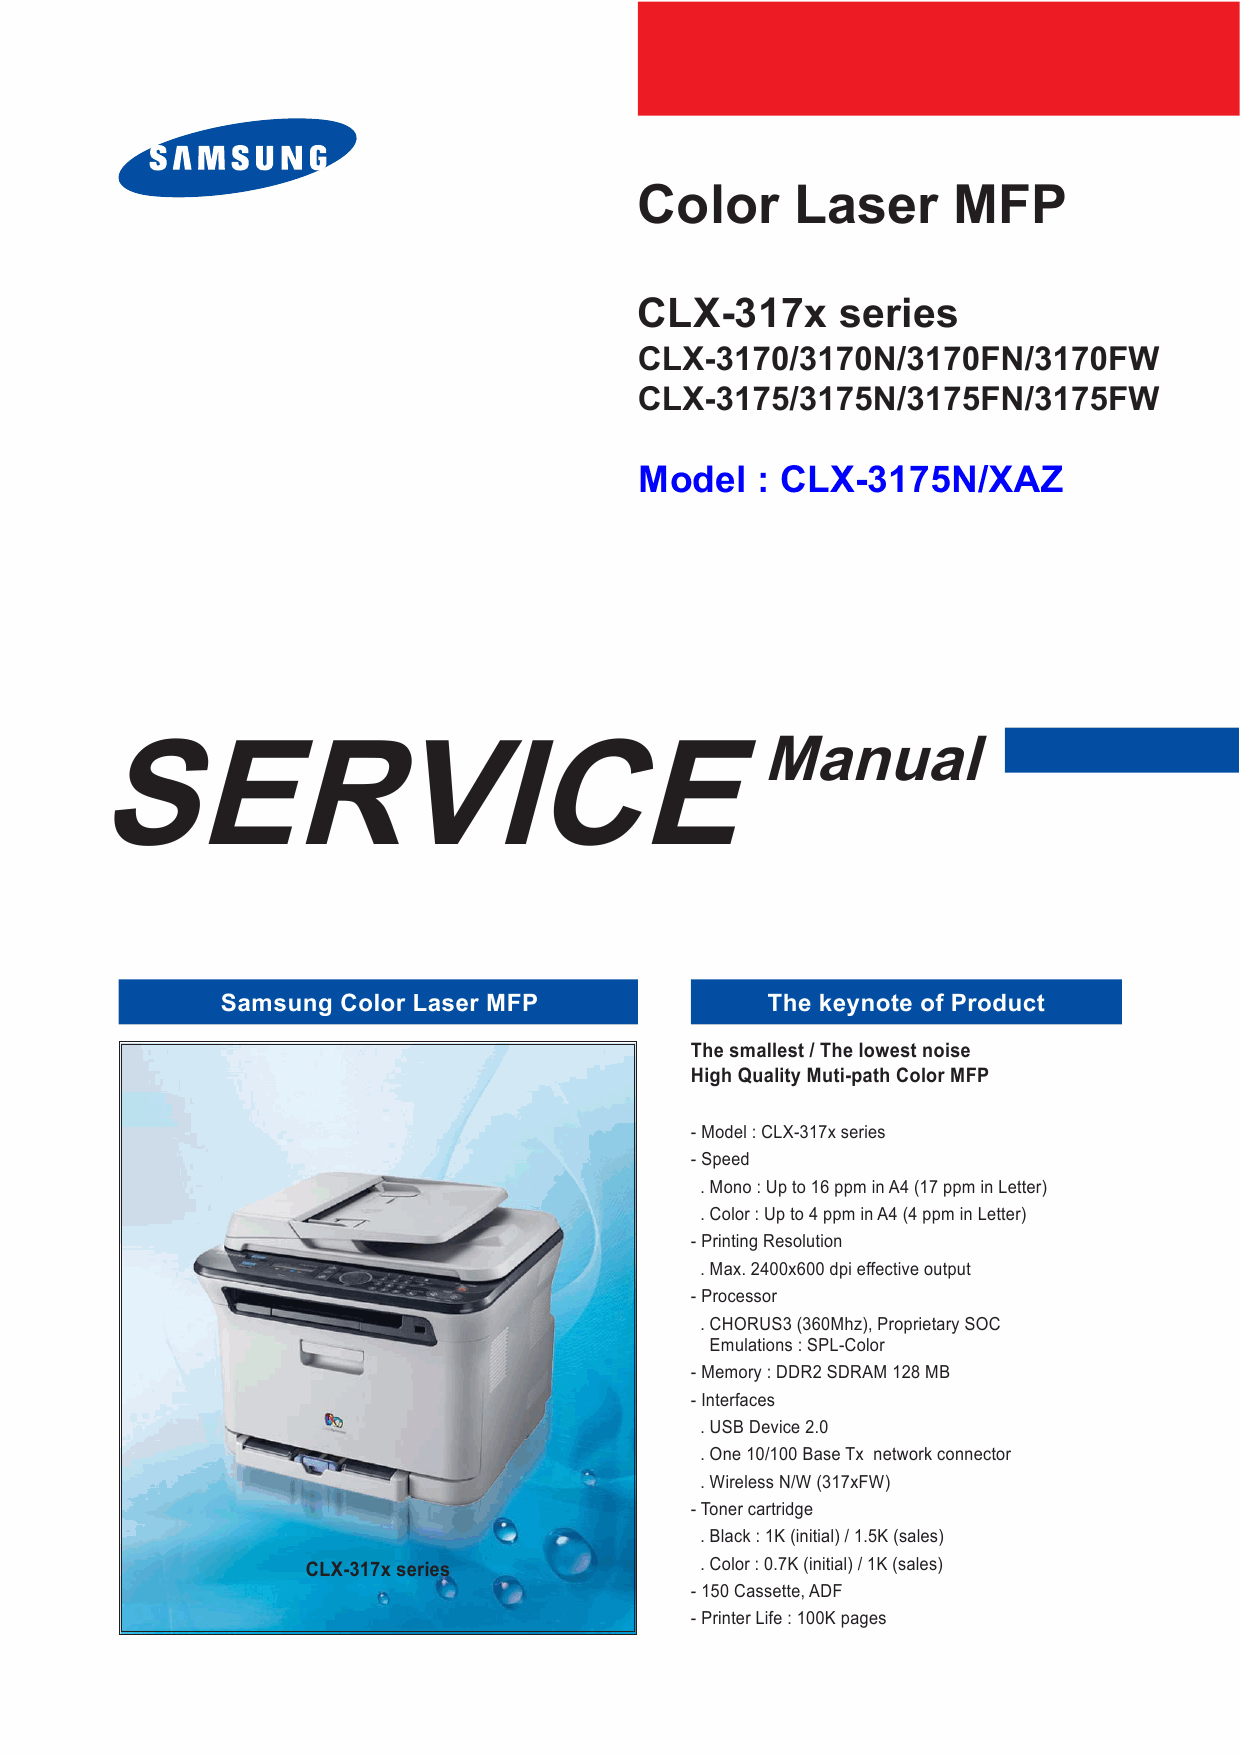 Samsung Digital-Color-Laser-MFP CLX-3170 3175 N FN FW Service and Parts Manual-1